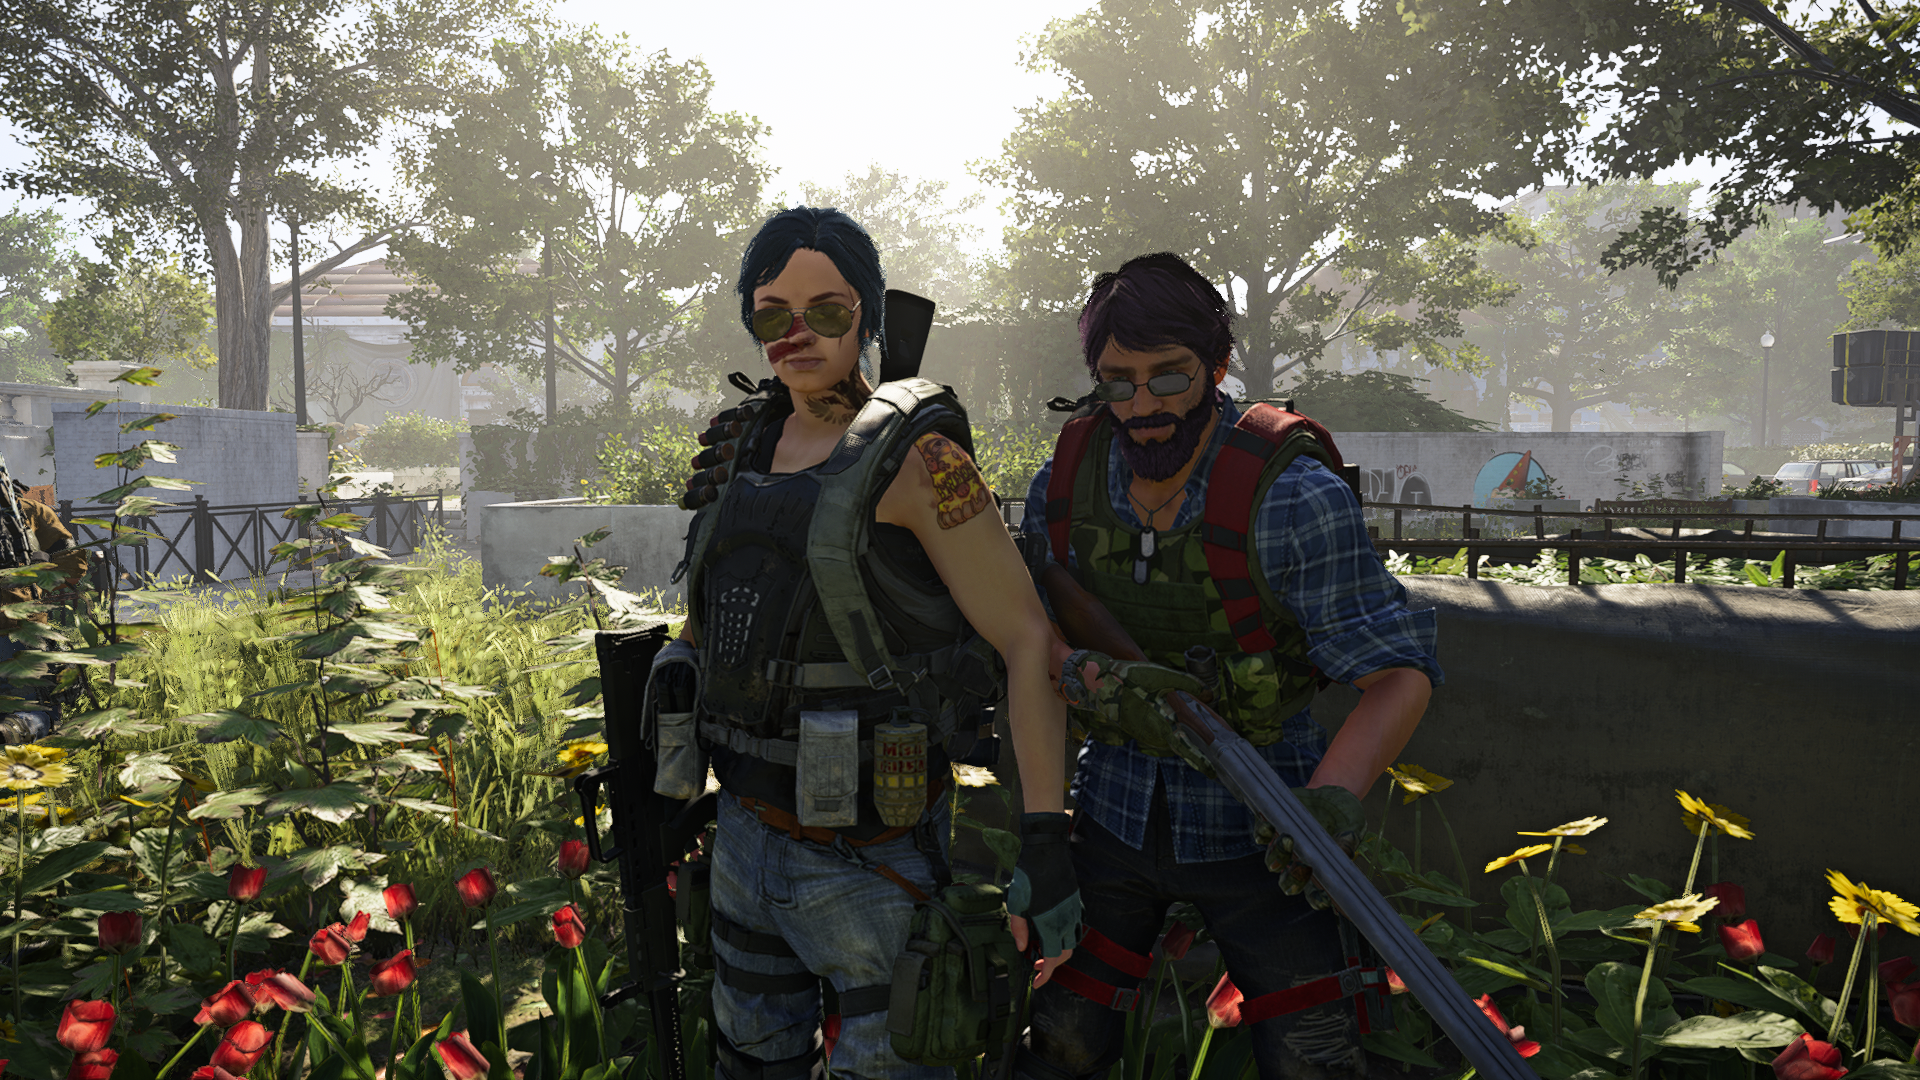 The Division 2 is the perfect date night activity